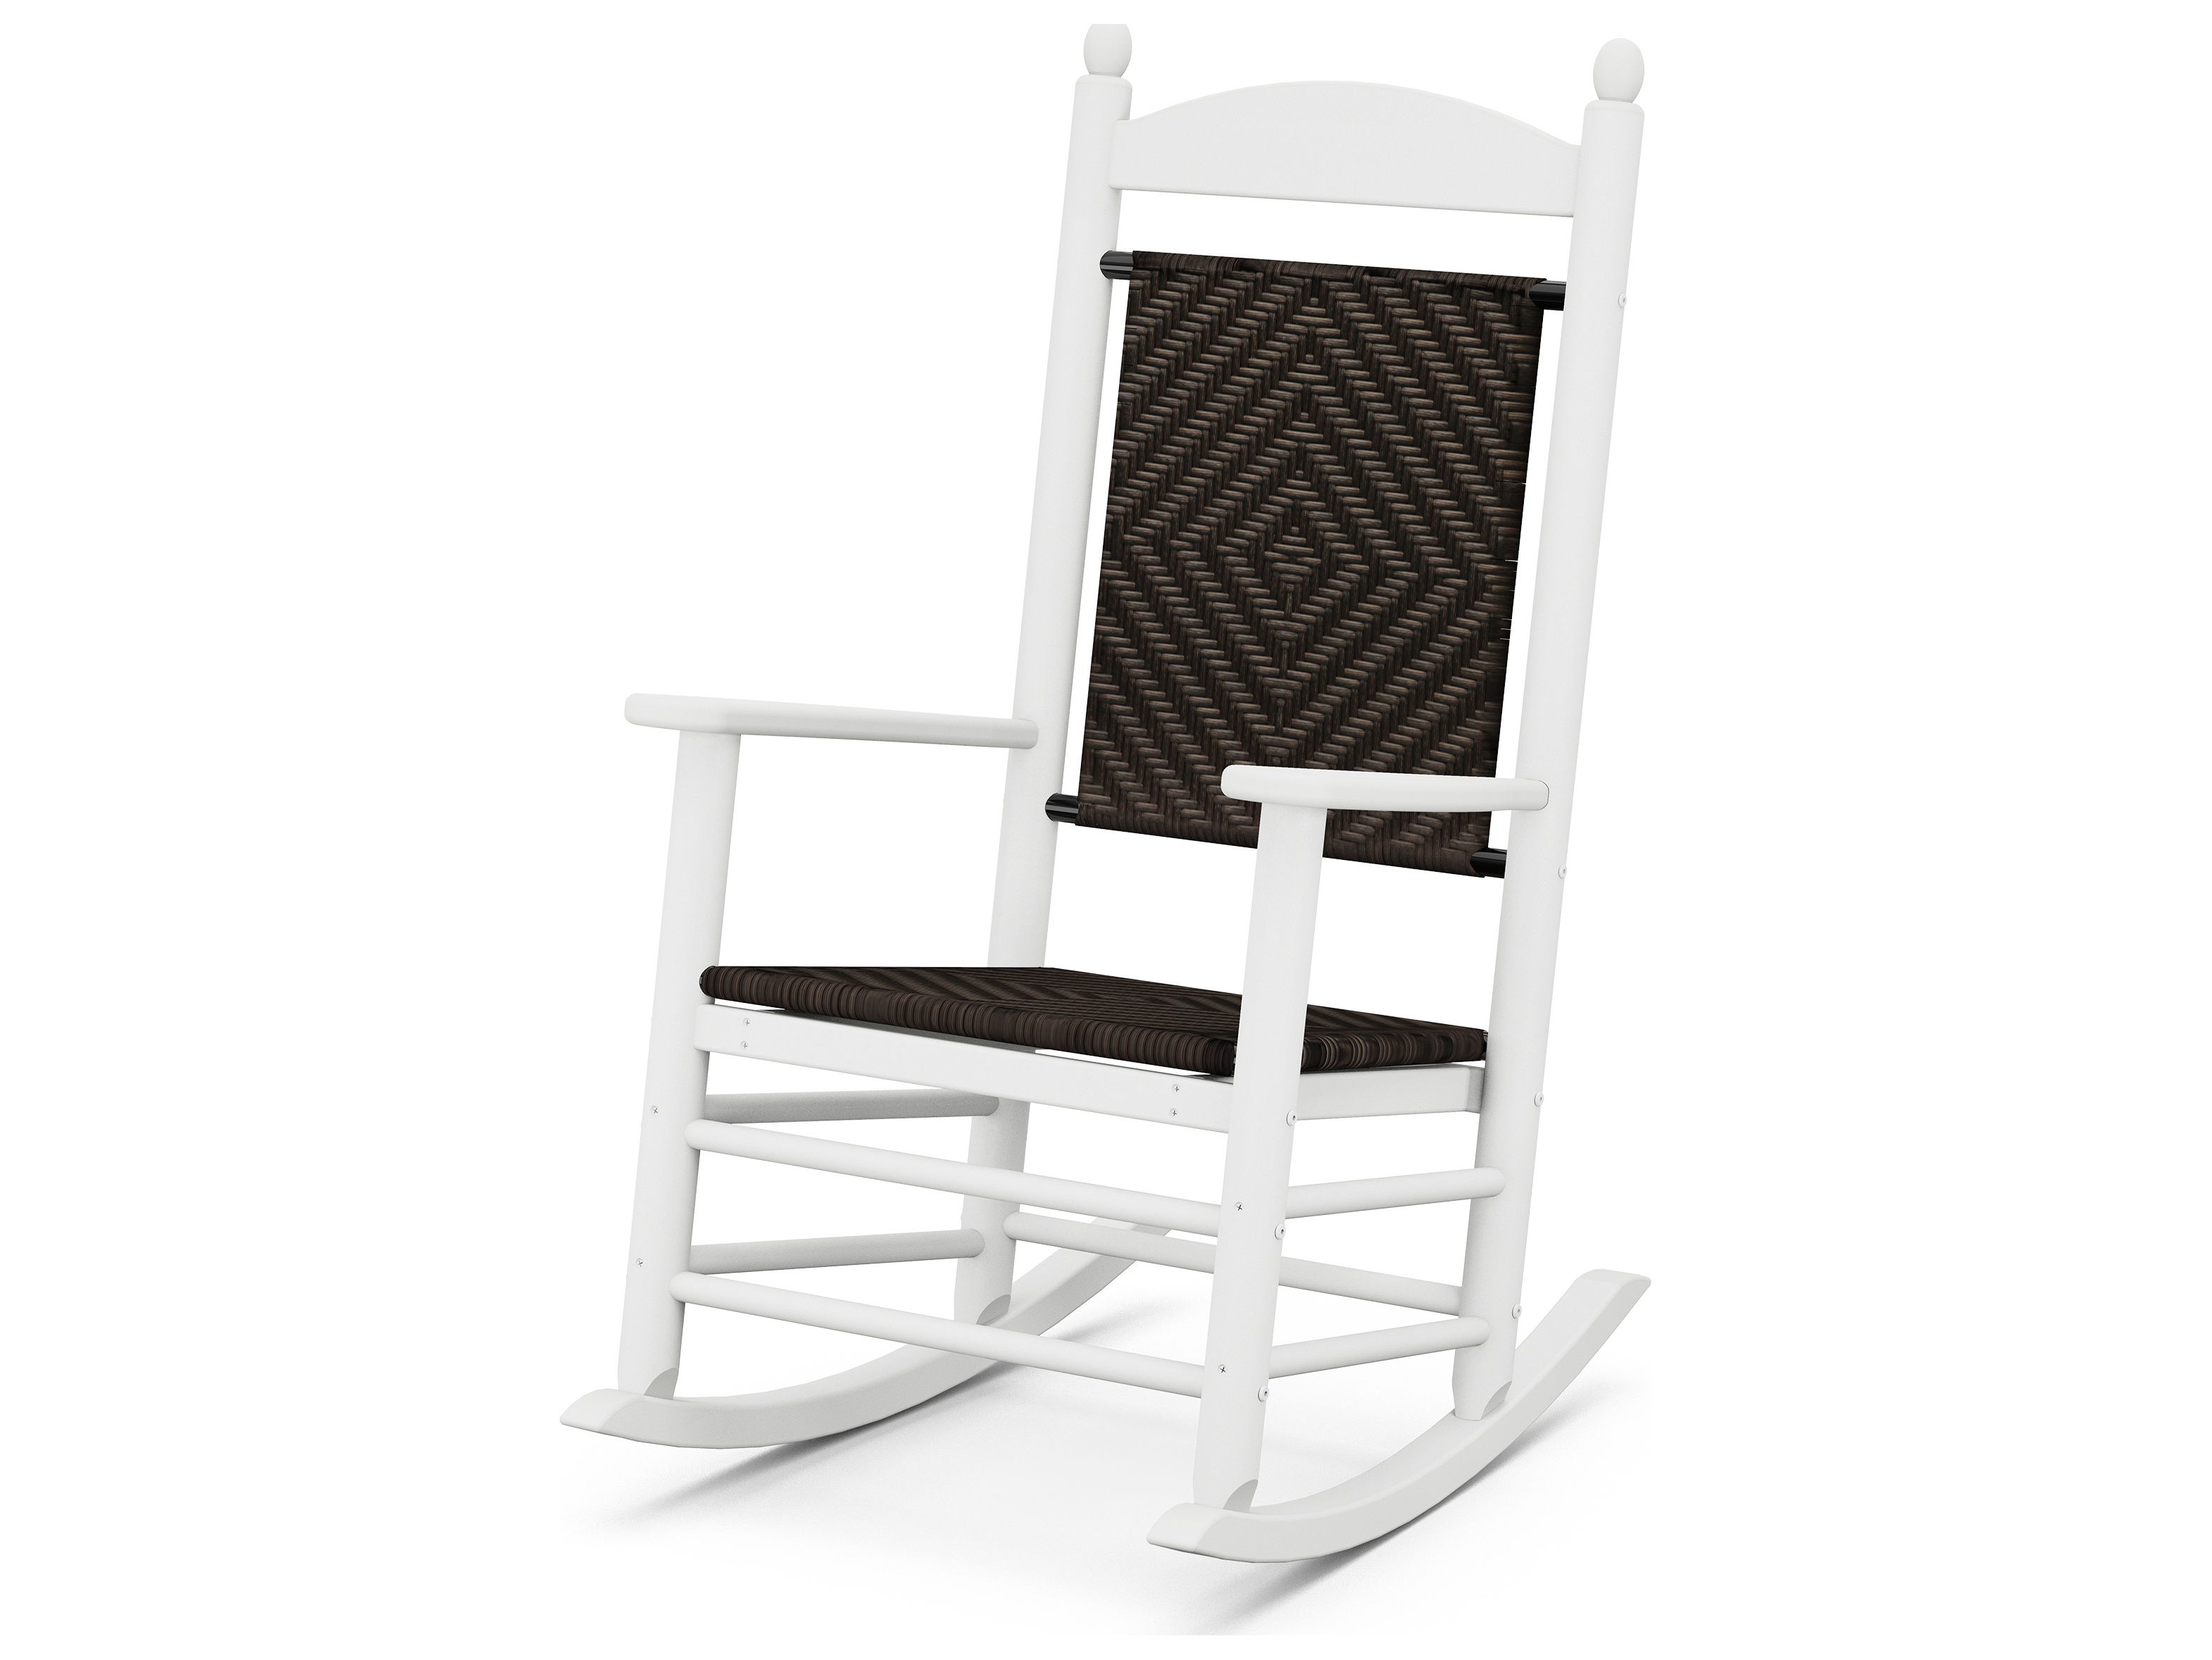 Polywood Jefferson Recycled Plastic Rocker Lounge Chair K147